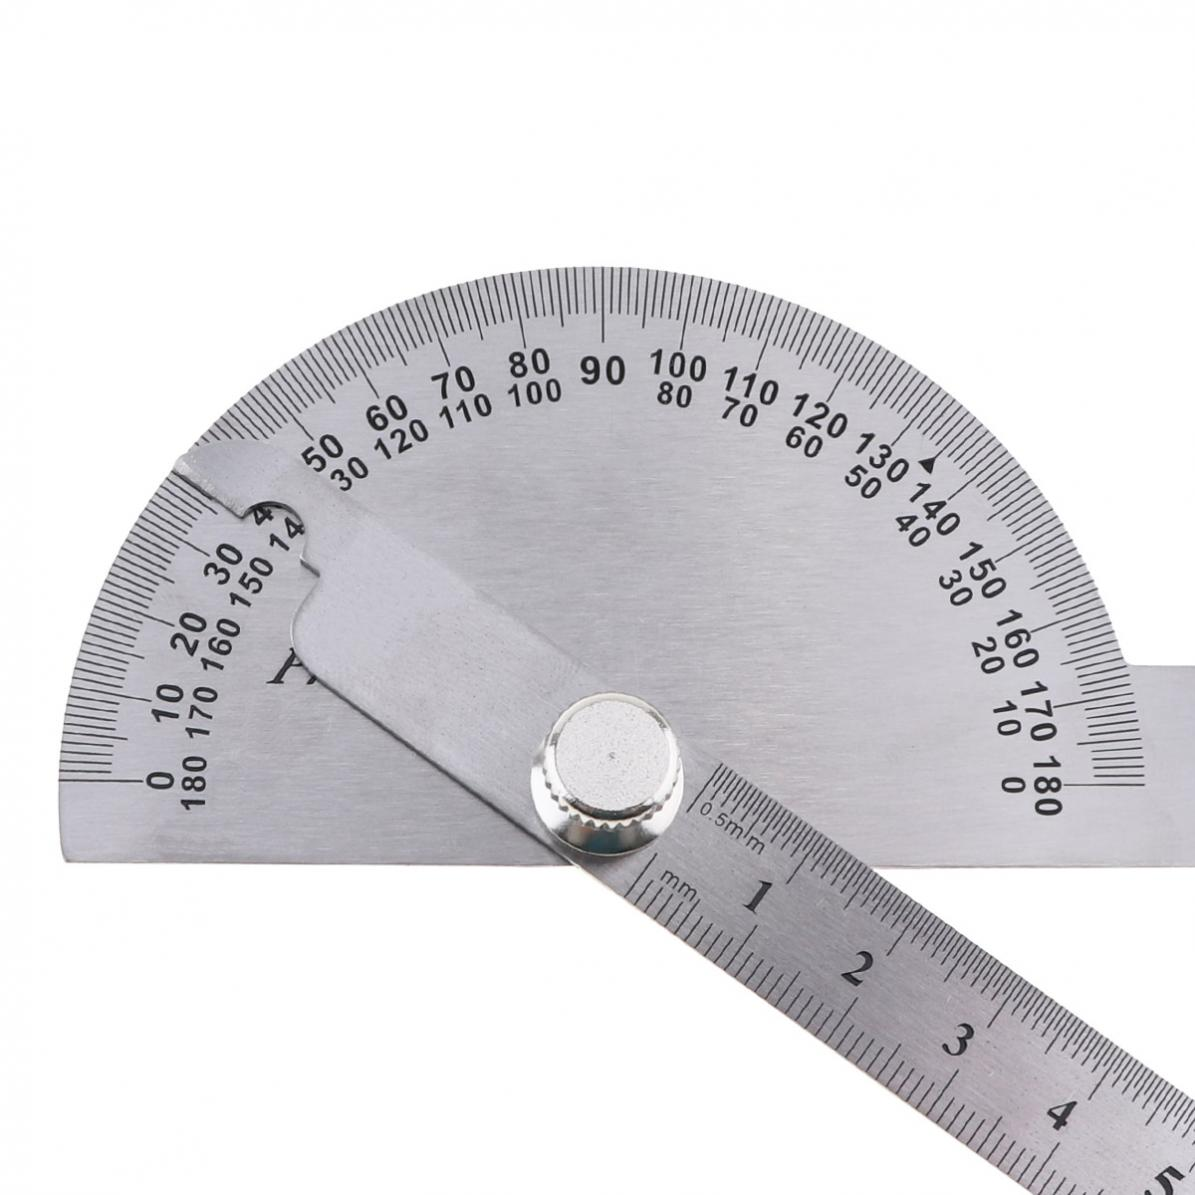 0-180-Stainless-Steel-Round-Head-Dual-Arm-Protractor-Angle-Finder-Rotary-Ruler miniature 6